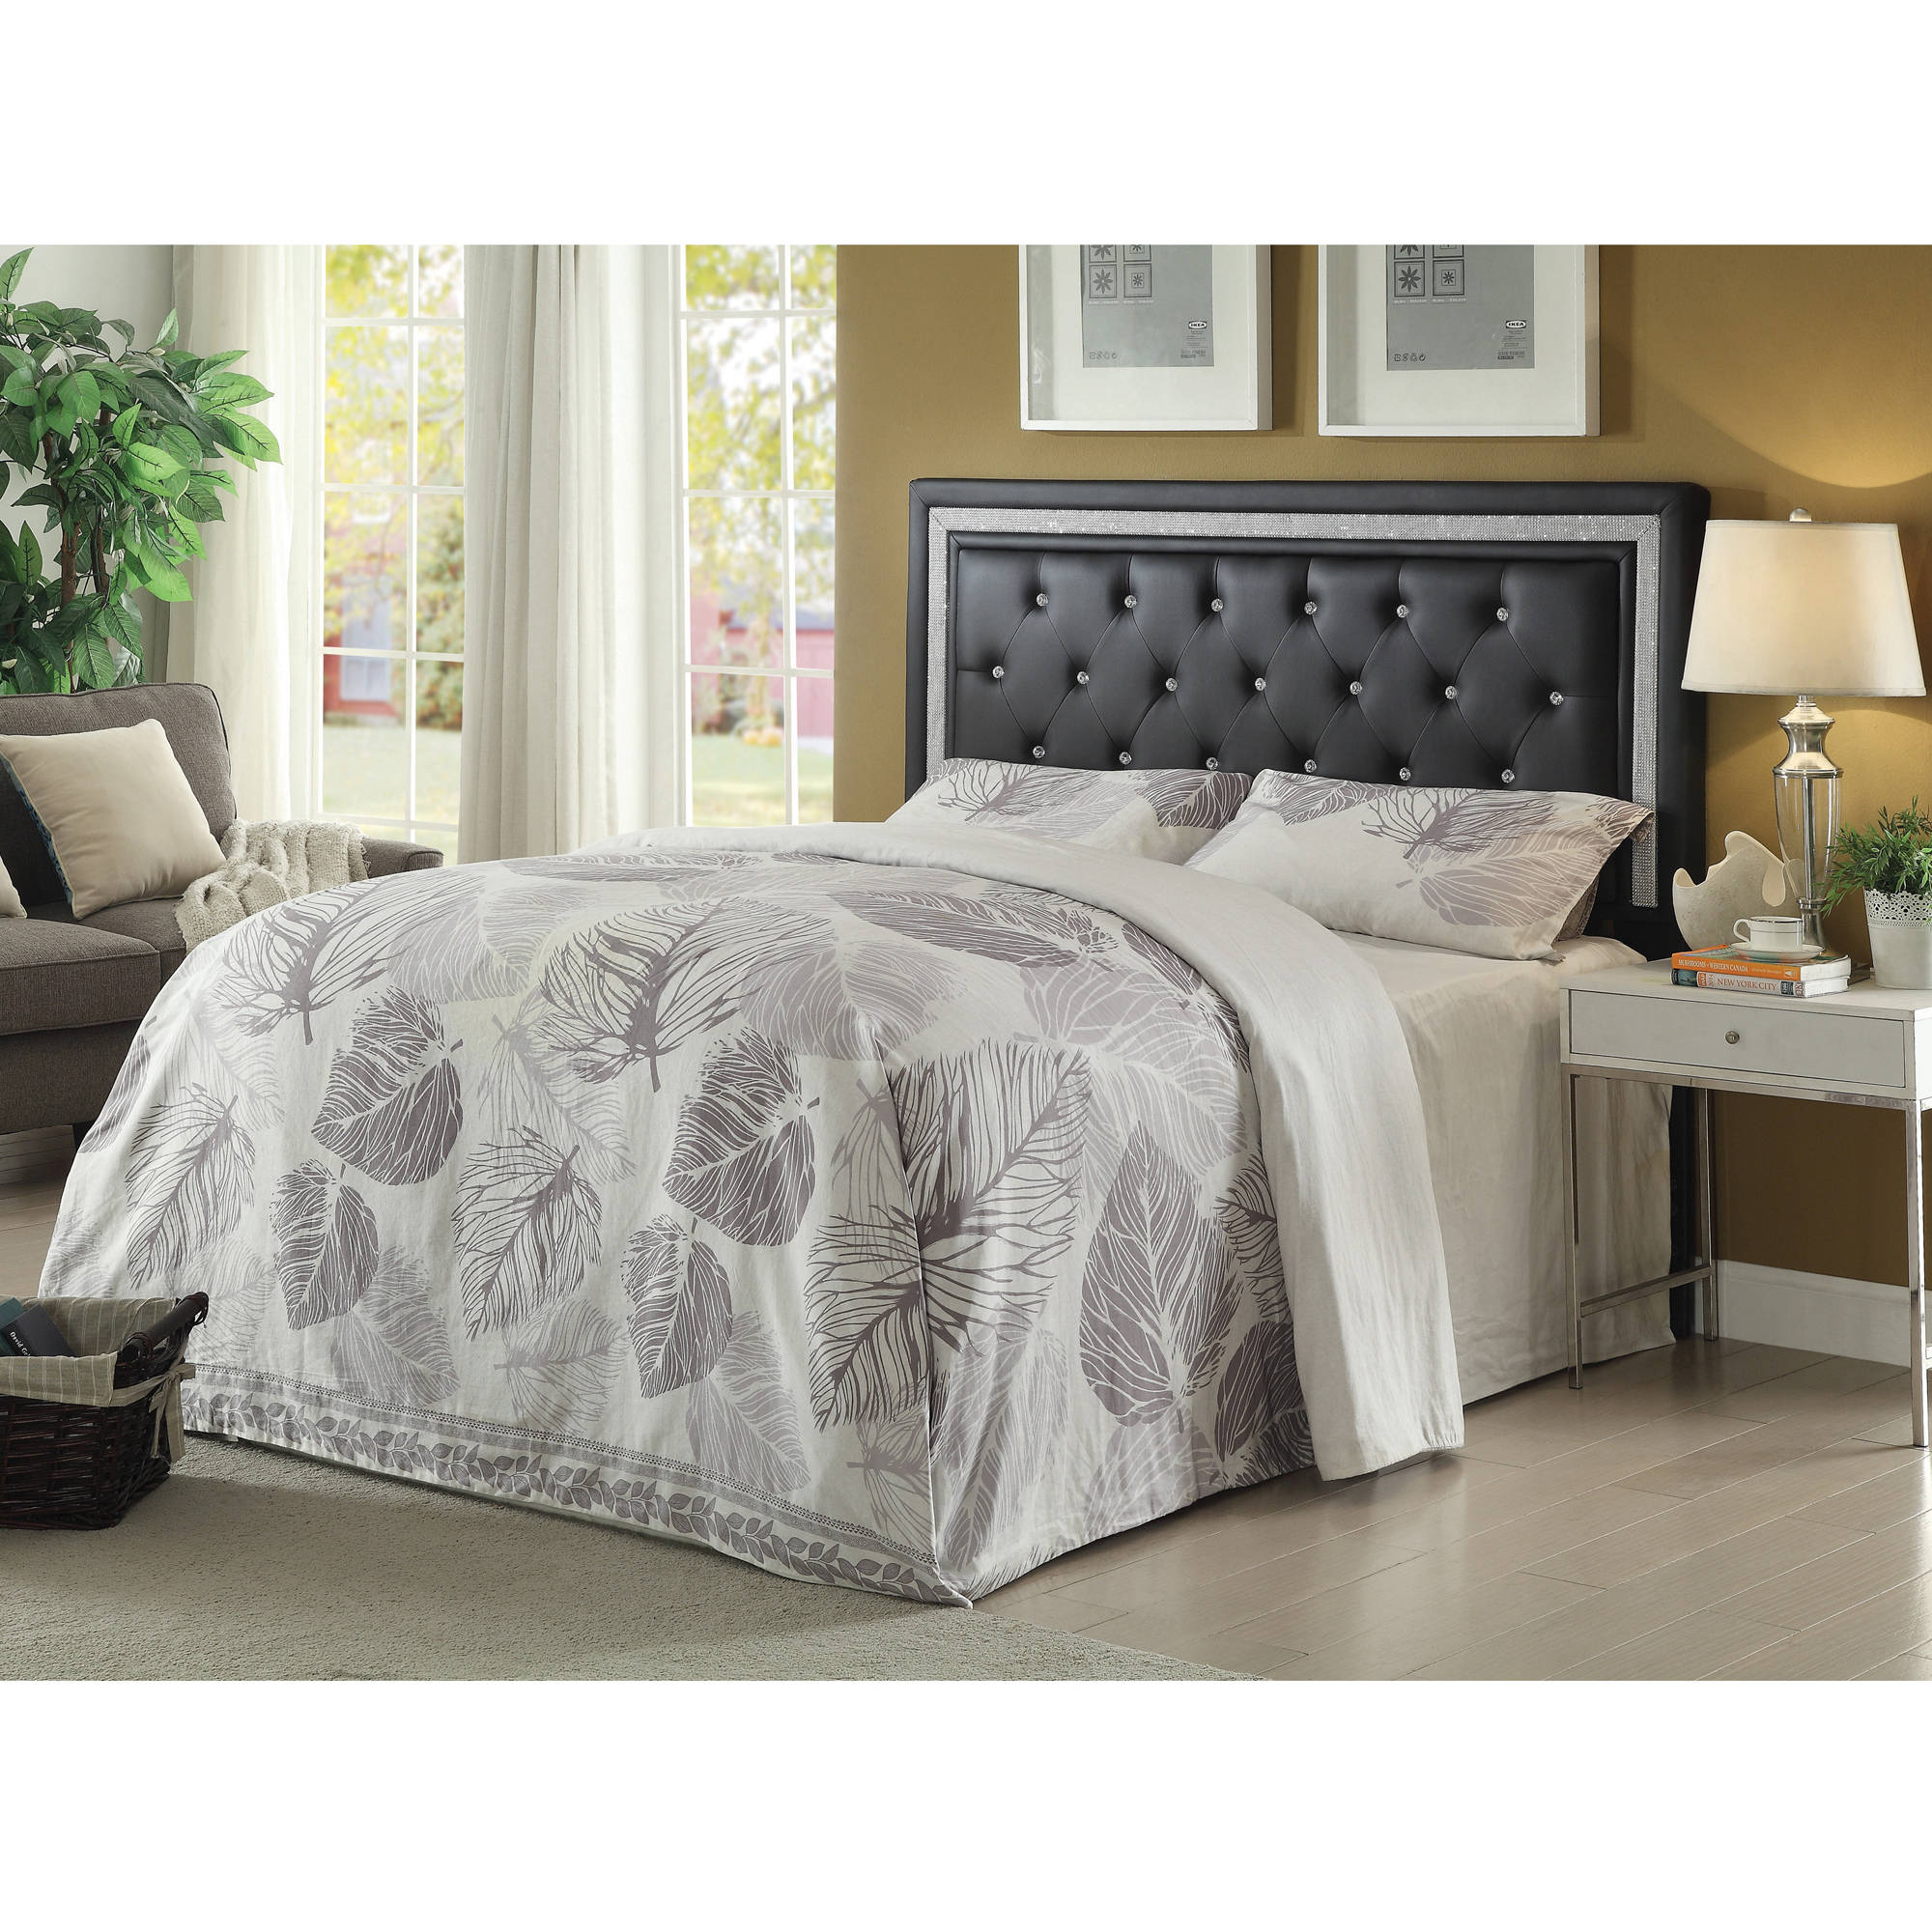 Coaster Andenne Contemporary Headboard, Multiple Sizes and Colors